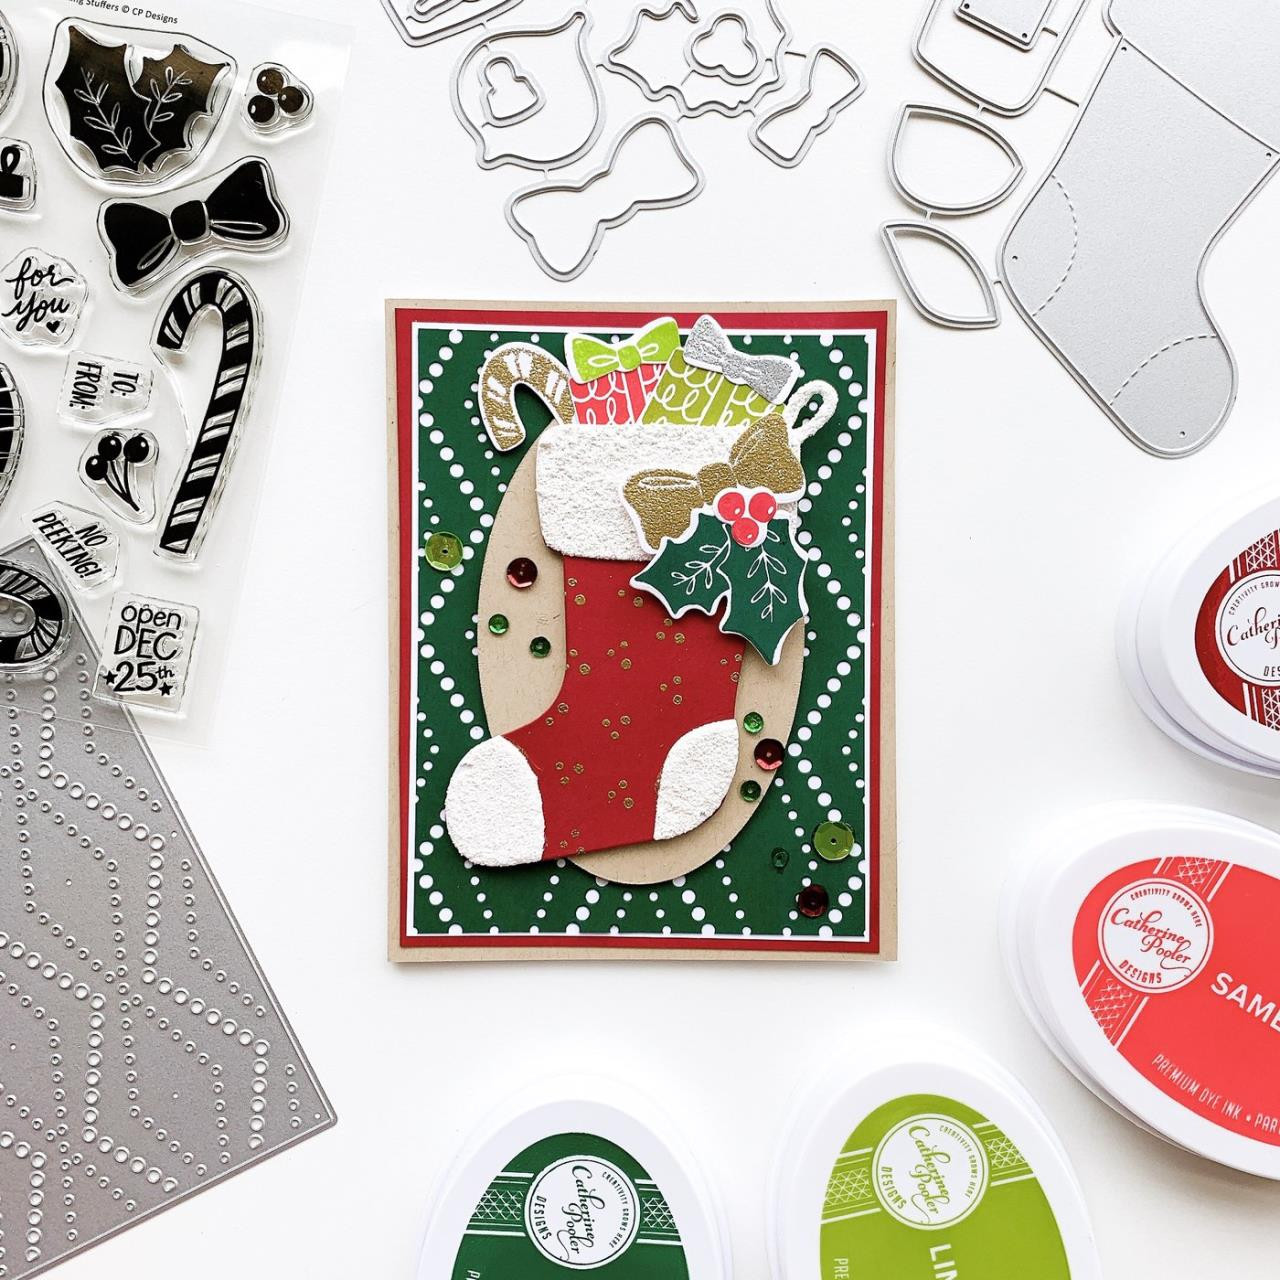 Stocking Stuffer, Catherine Pooler Clear Stamps - 819447028474